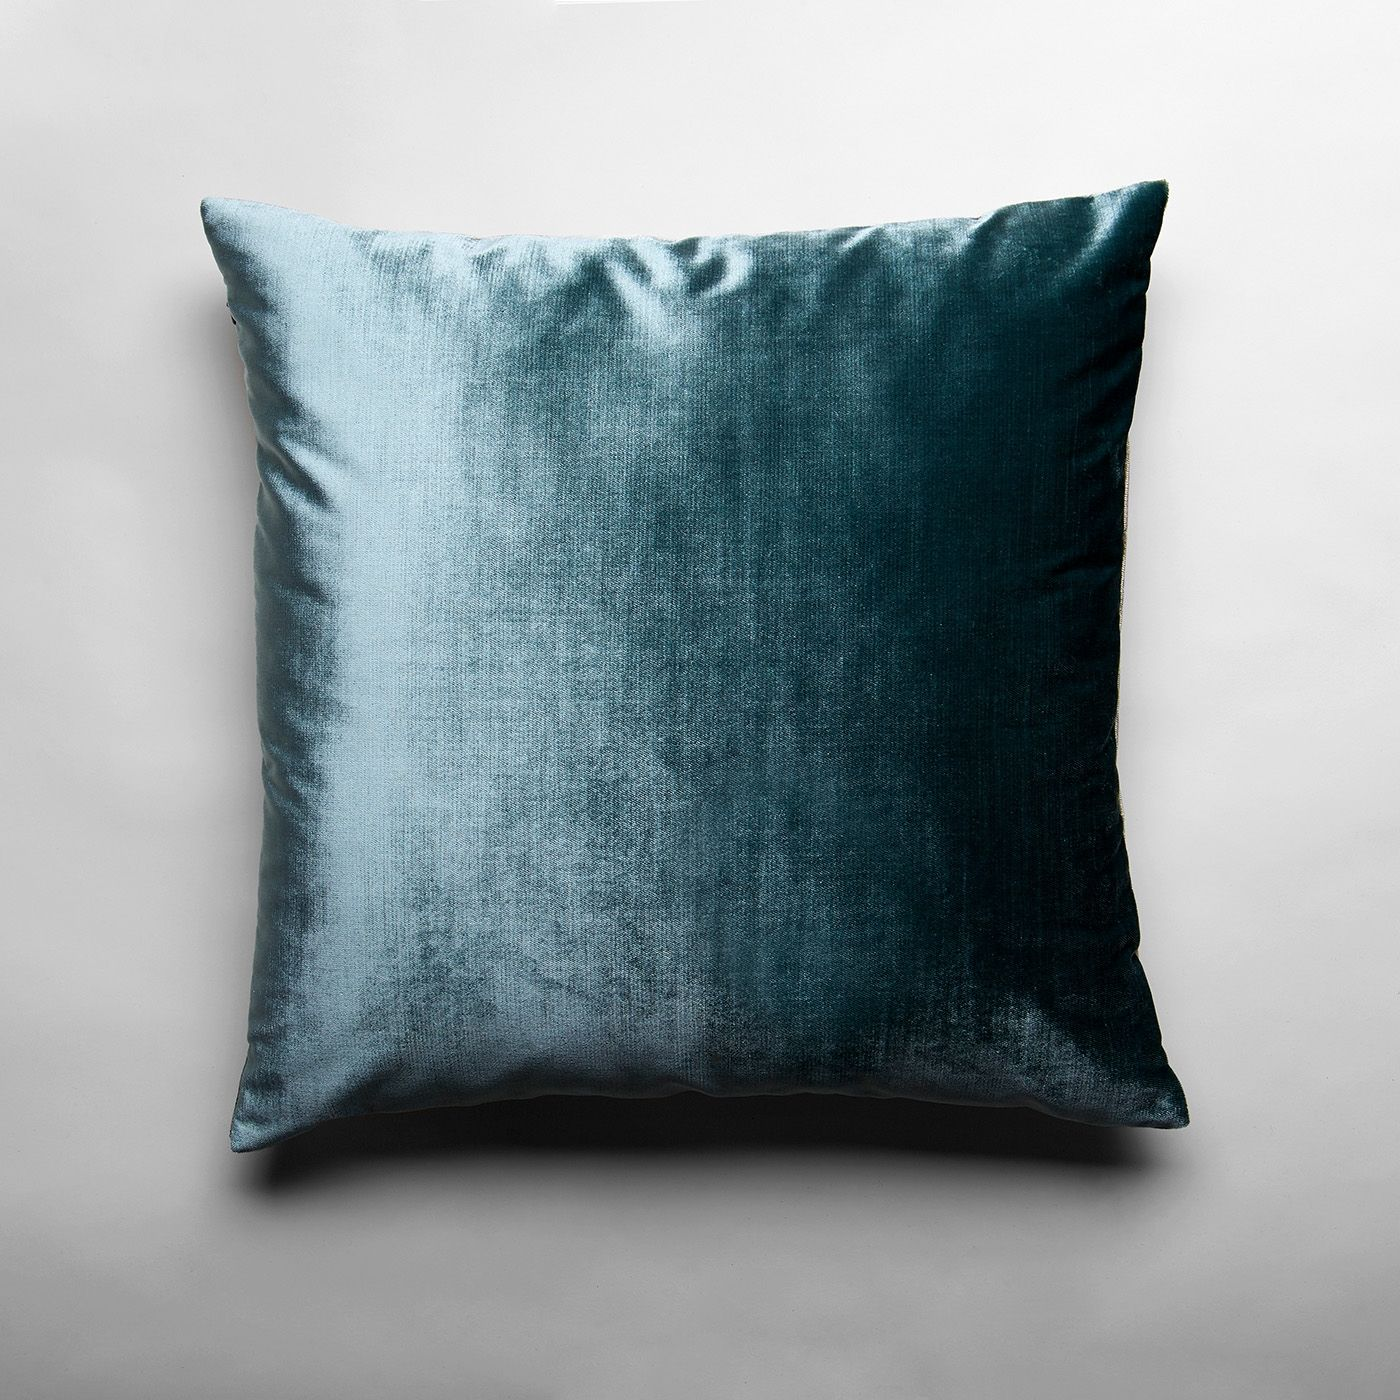 Laurel Velvet Throw Pillow Cover